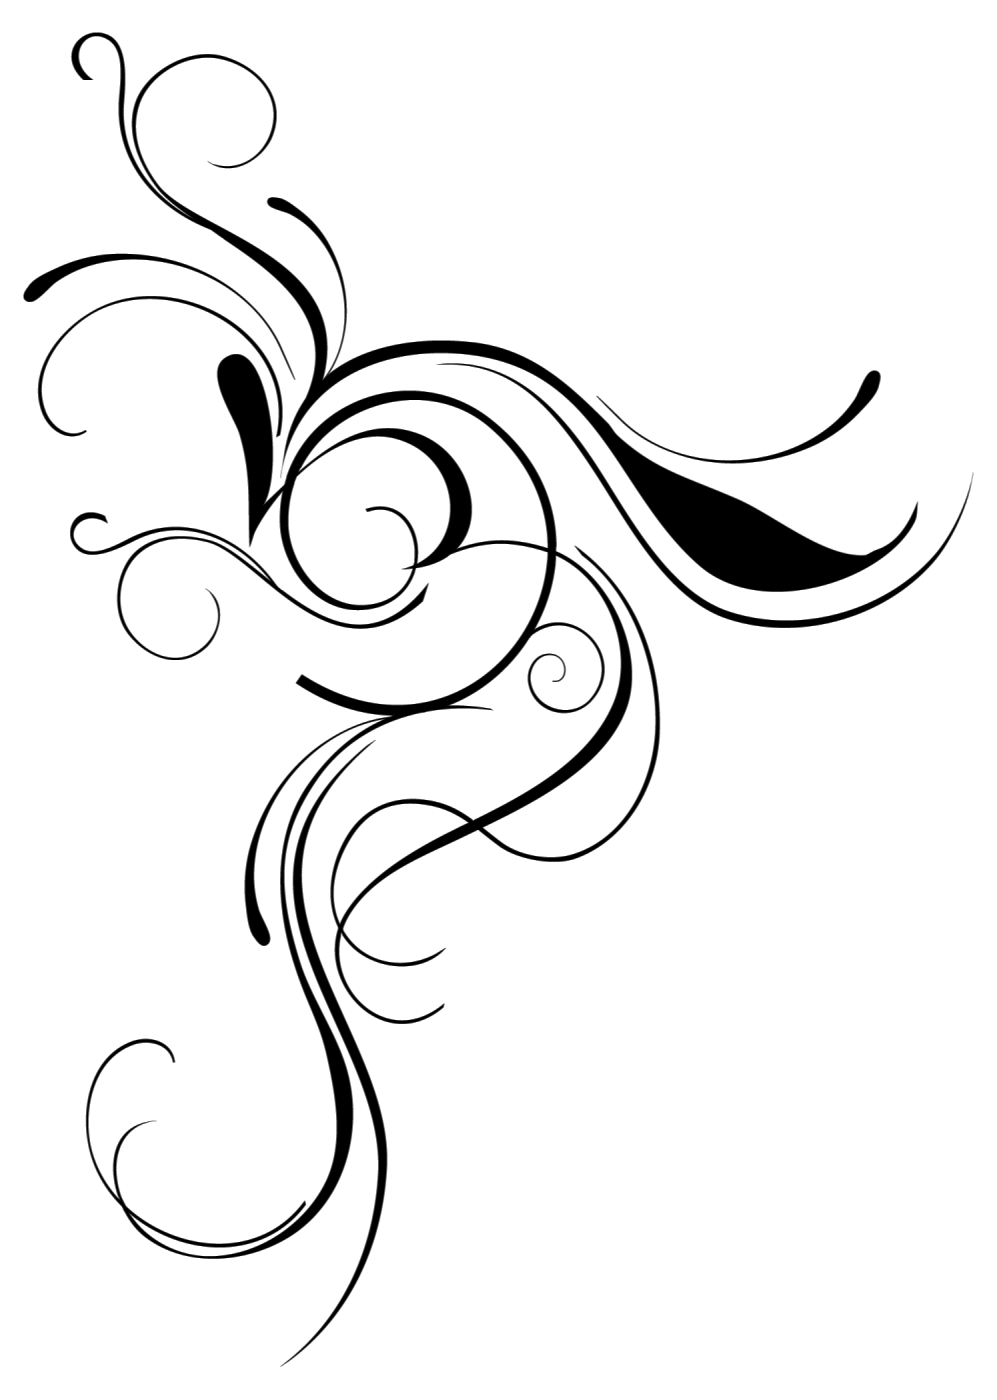 Flourish clipart curly cue, Flourish curly cue Transparent FREE for download on ...